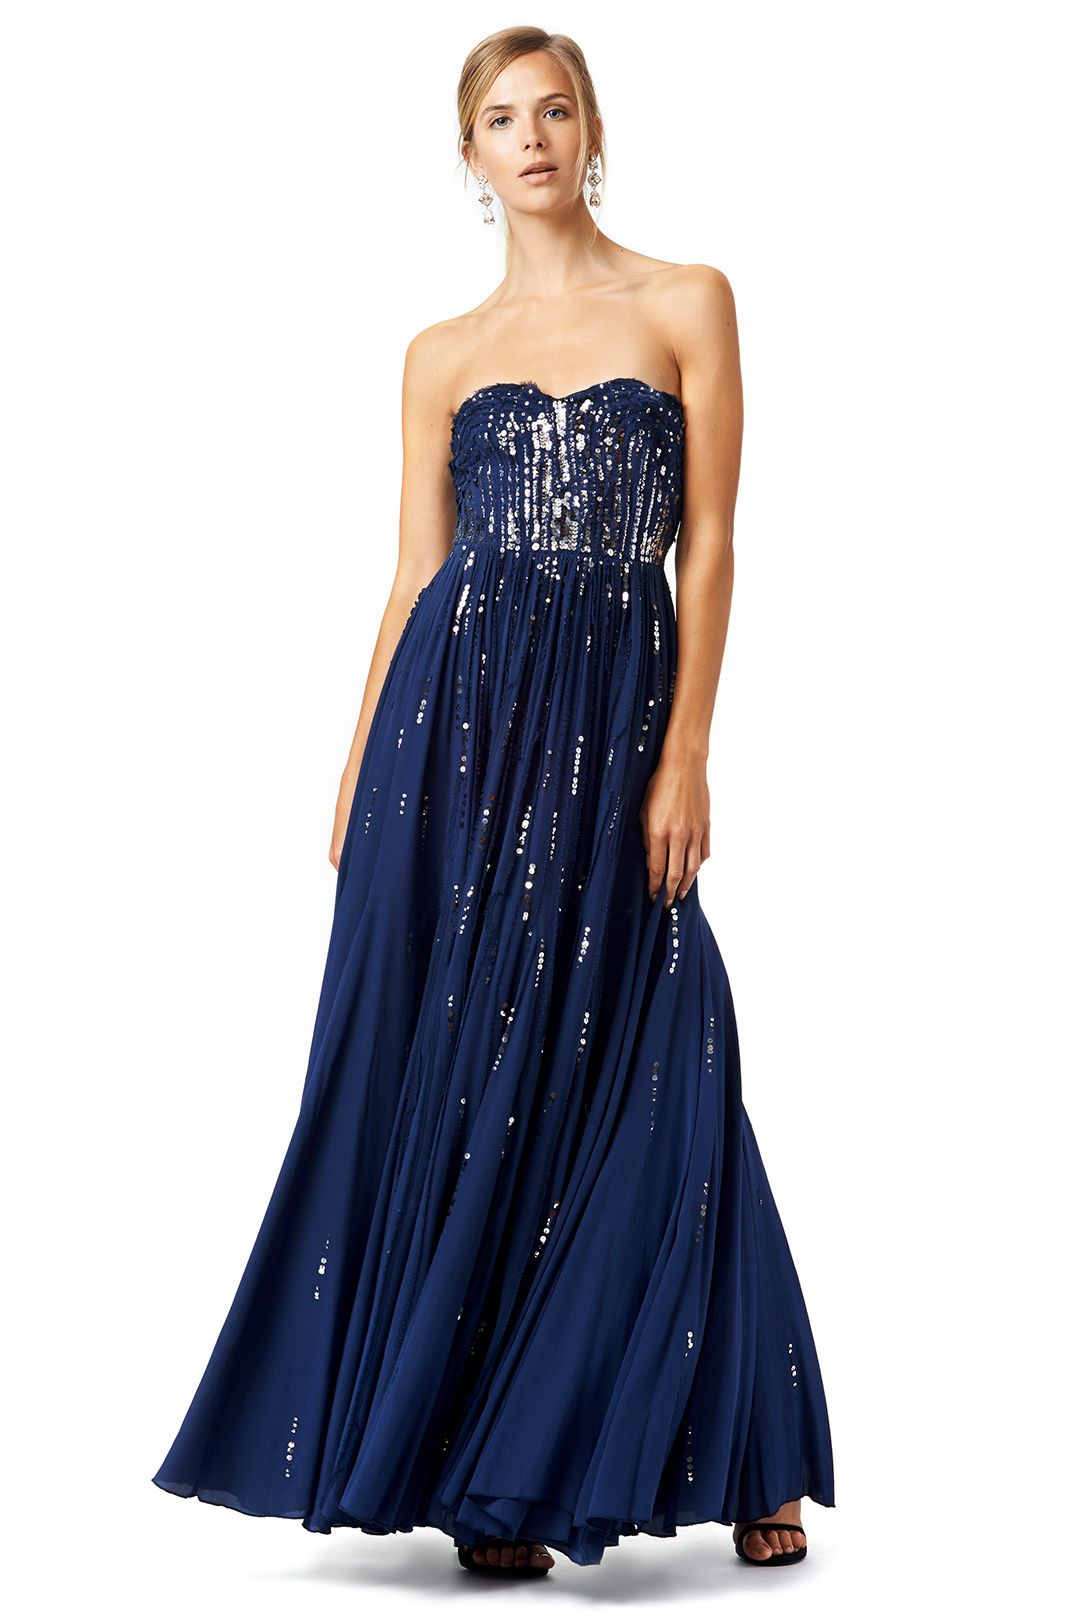 Long strapless navy gown with sequined bodice meteor shower gown long strapless navy gown with sequined bodice meteor shower gown by rebecca taylor ombrellifo Images